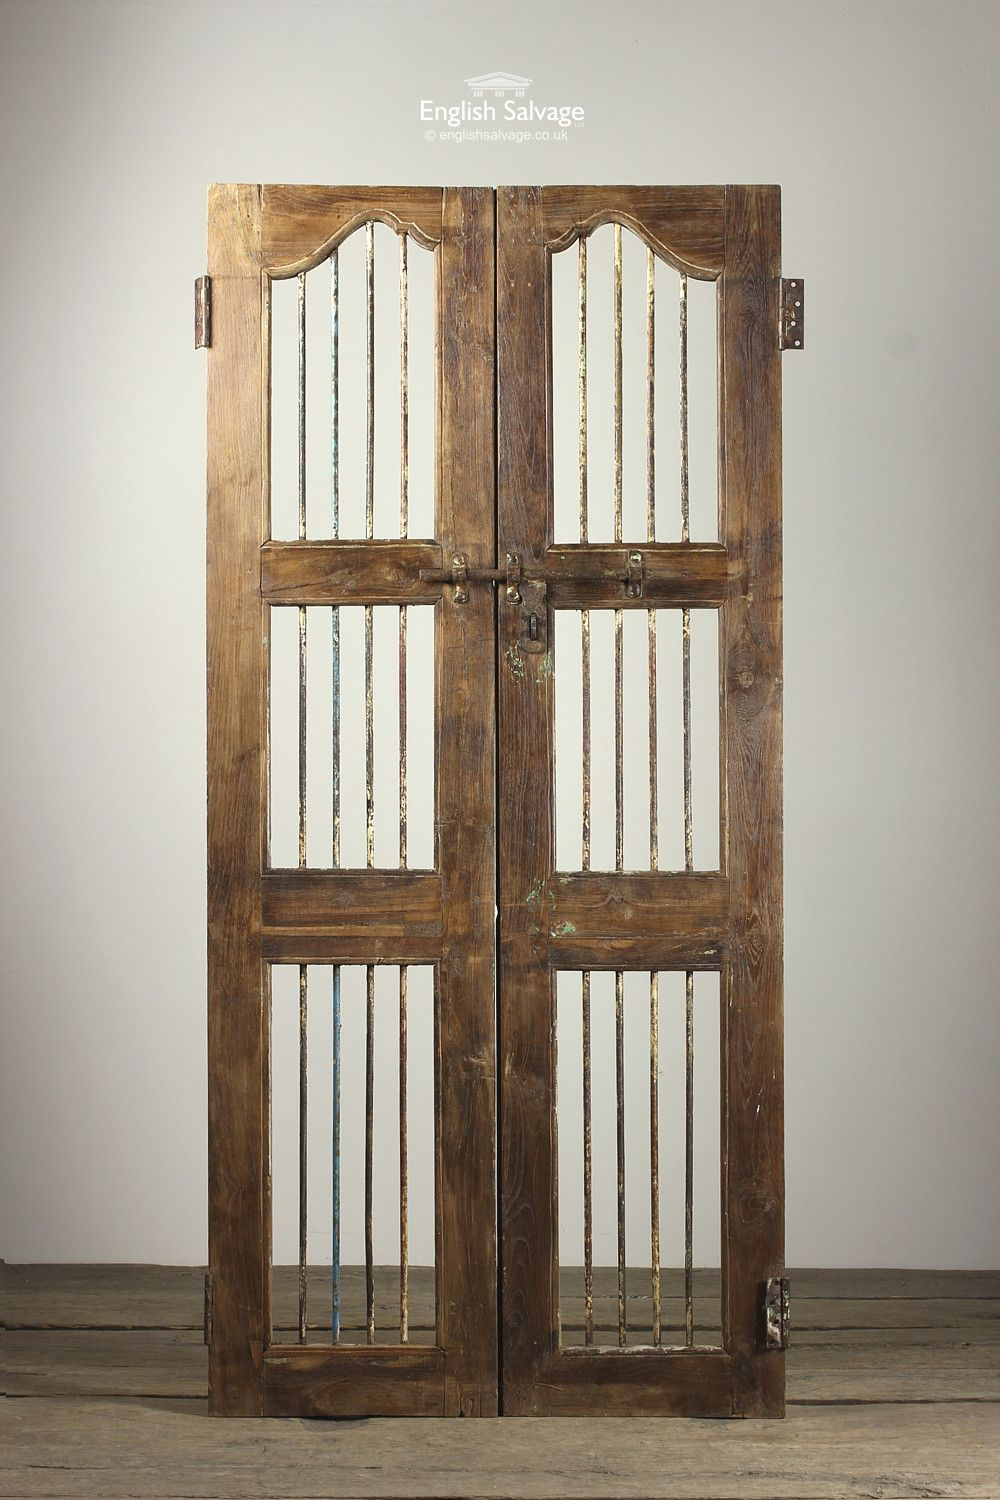 Salvaged Iron And Wood Jali Doors Reclaimed Architectural